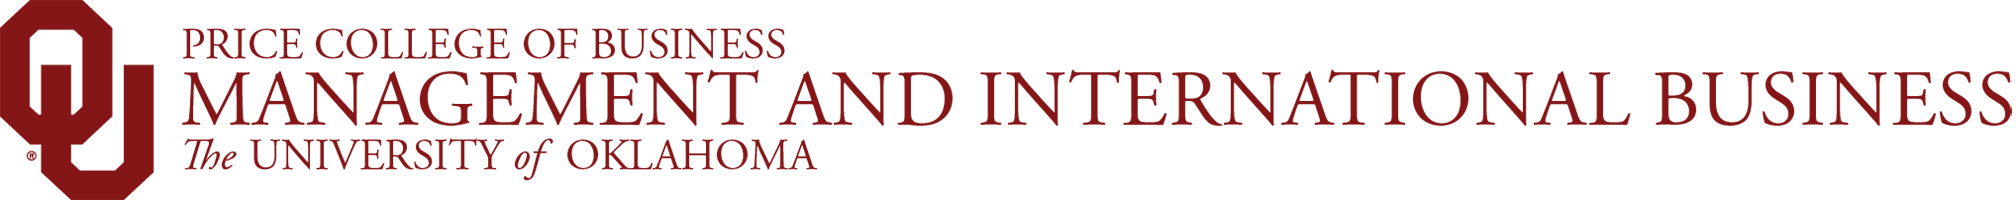 Price College of Business, Management and International Business, The University of Oklahoma website wordmark